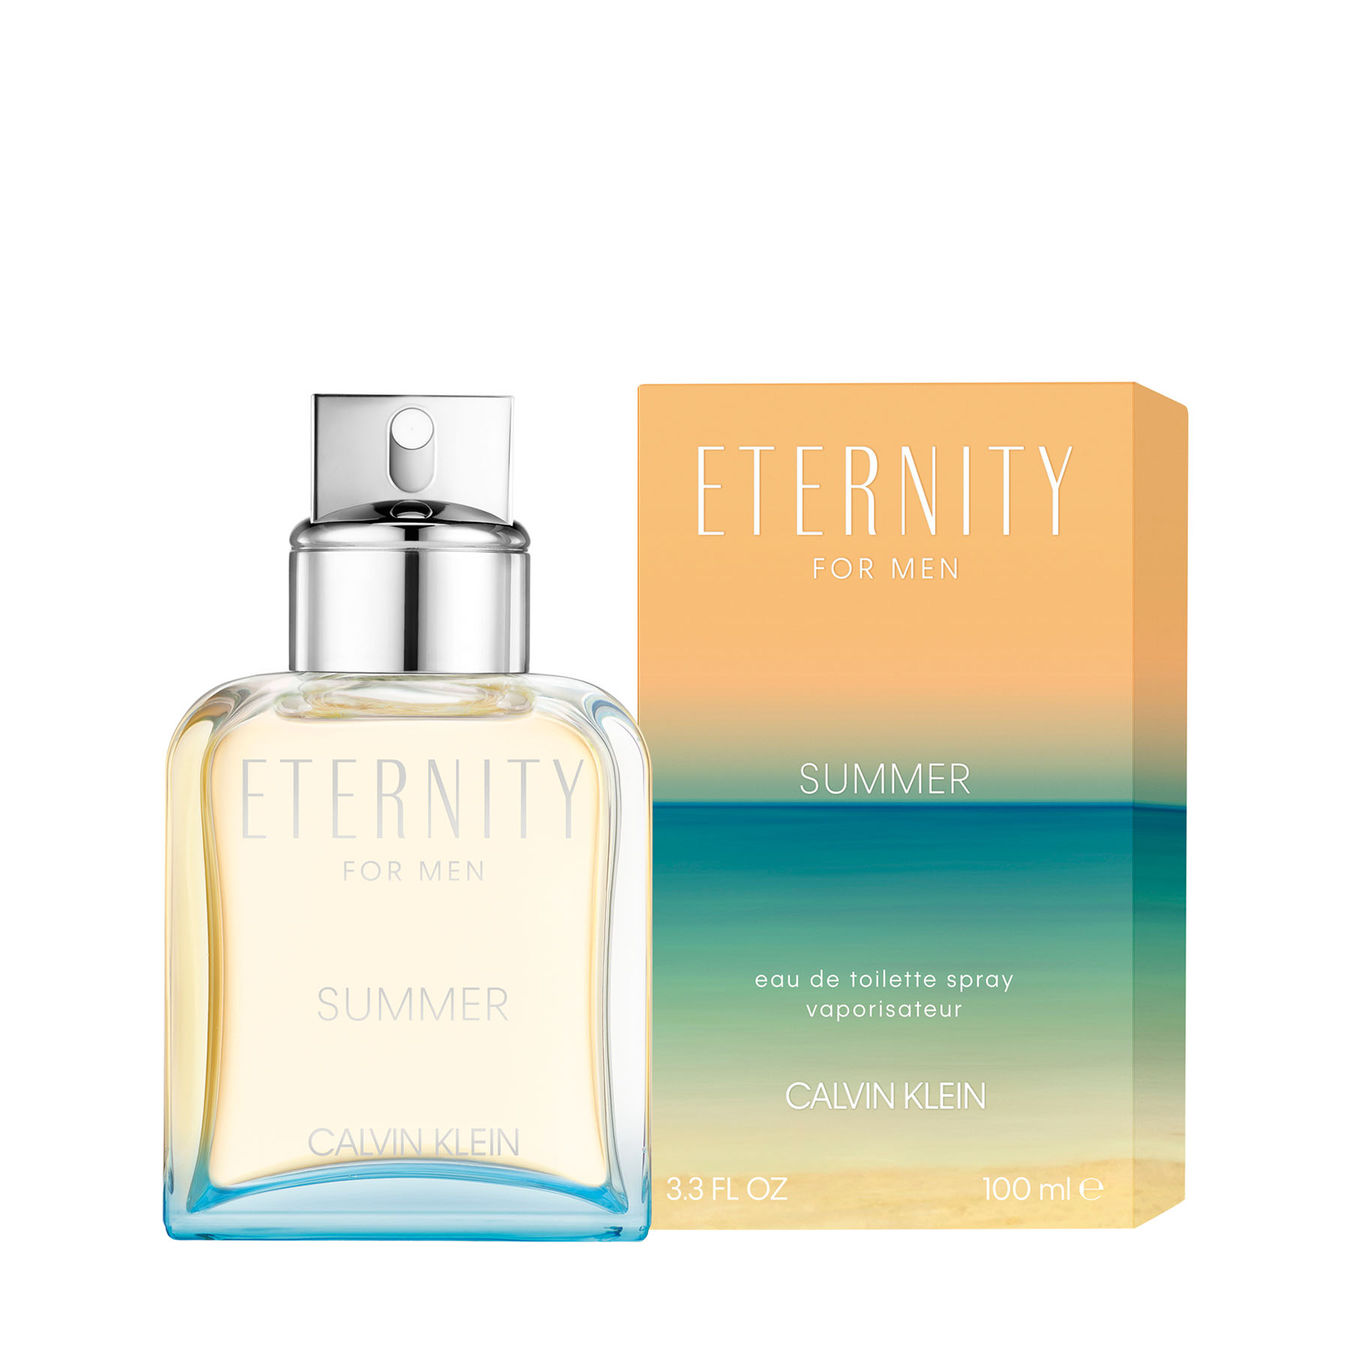 CK Eternity Summer edt